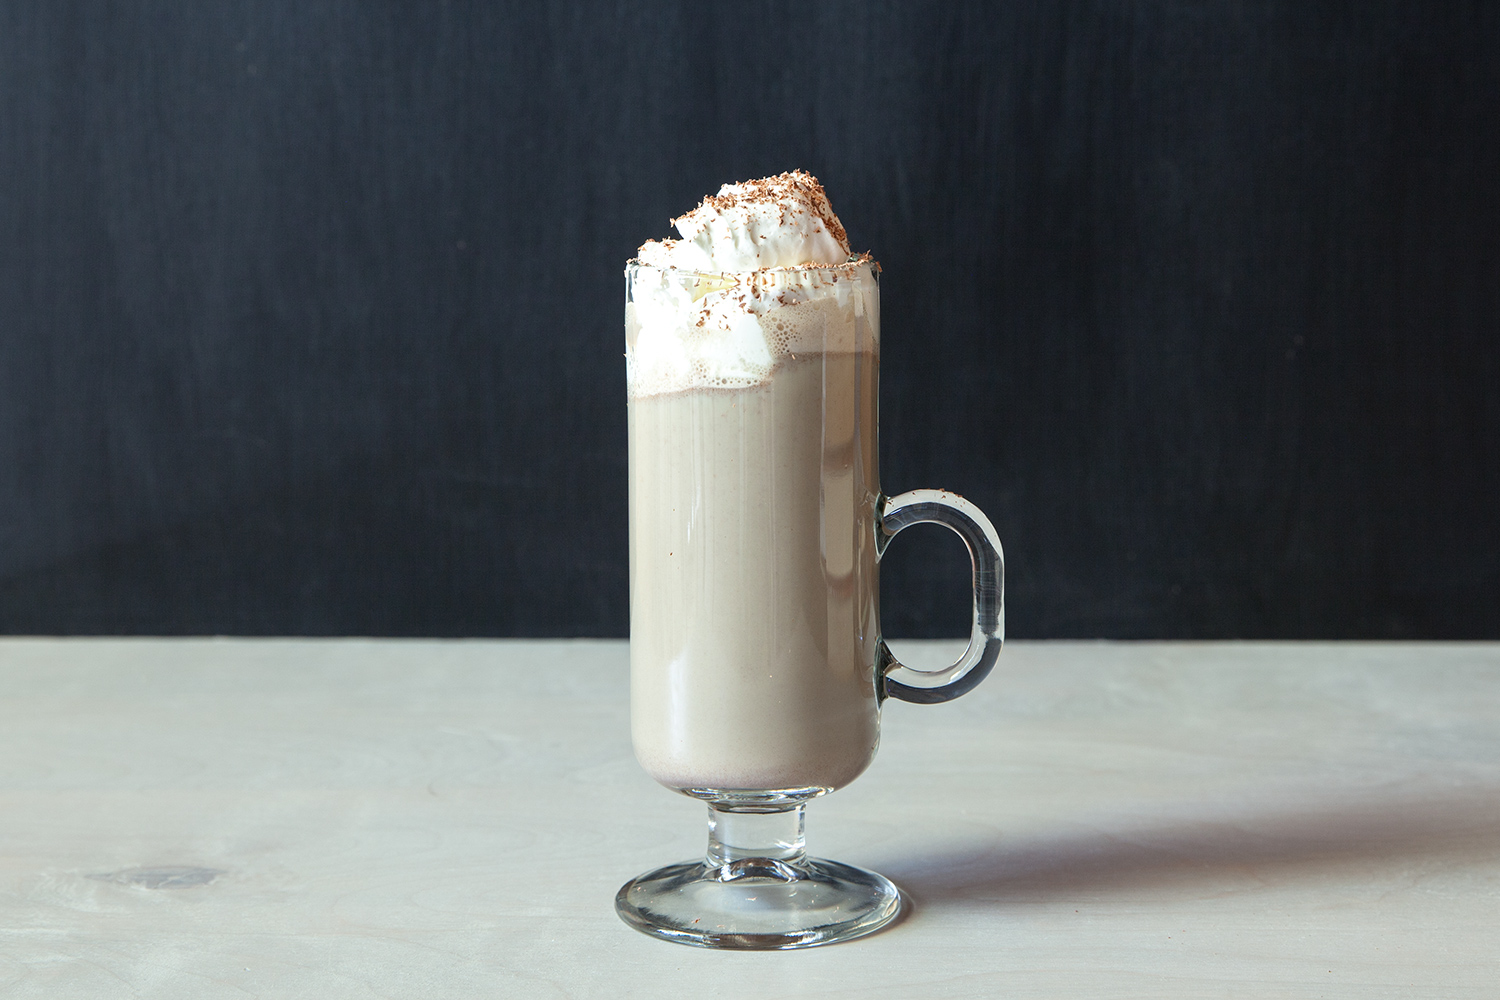 Archer S Peppermint Patty Hot Chocolate And Booze Why Yes The